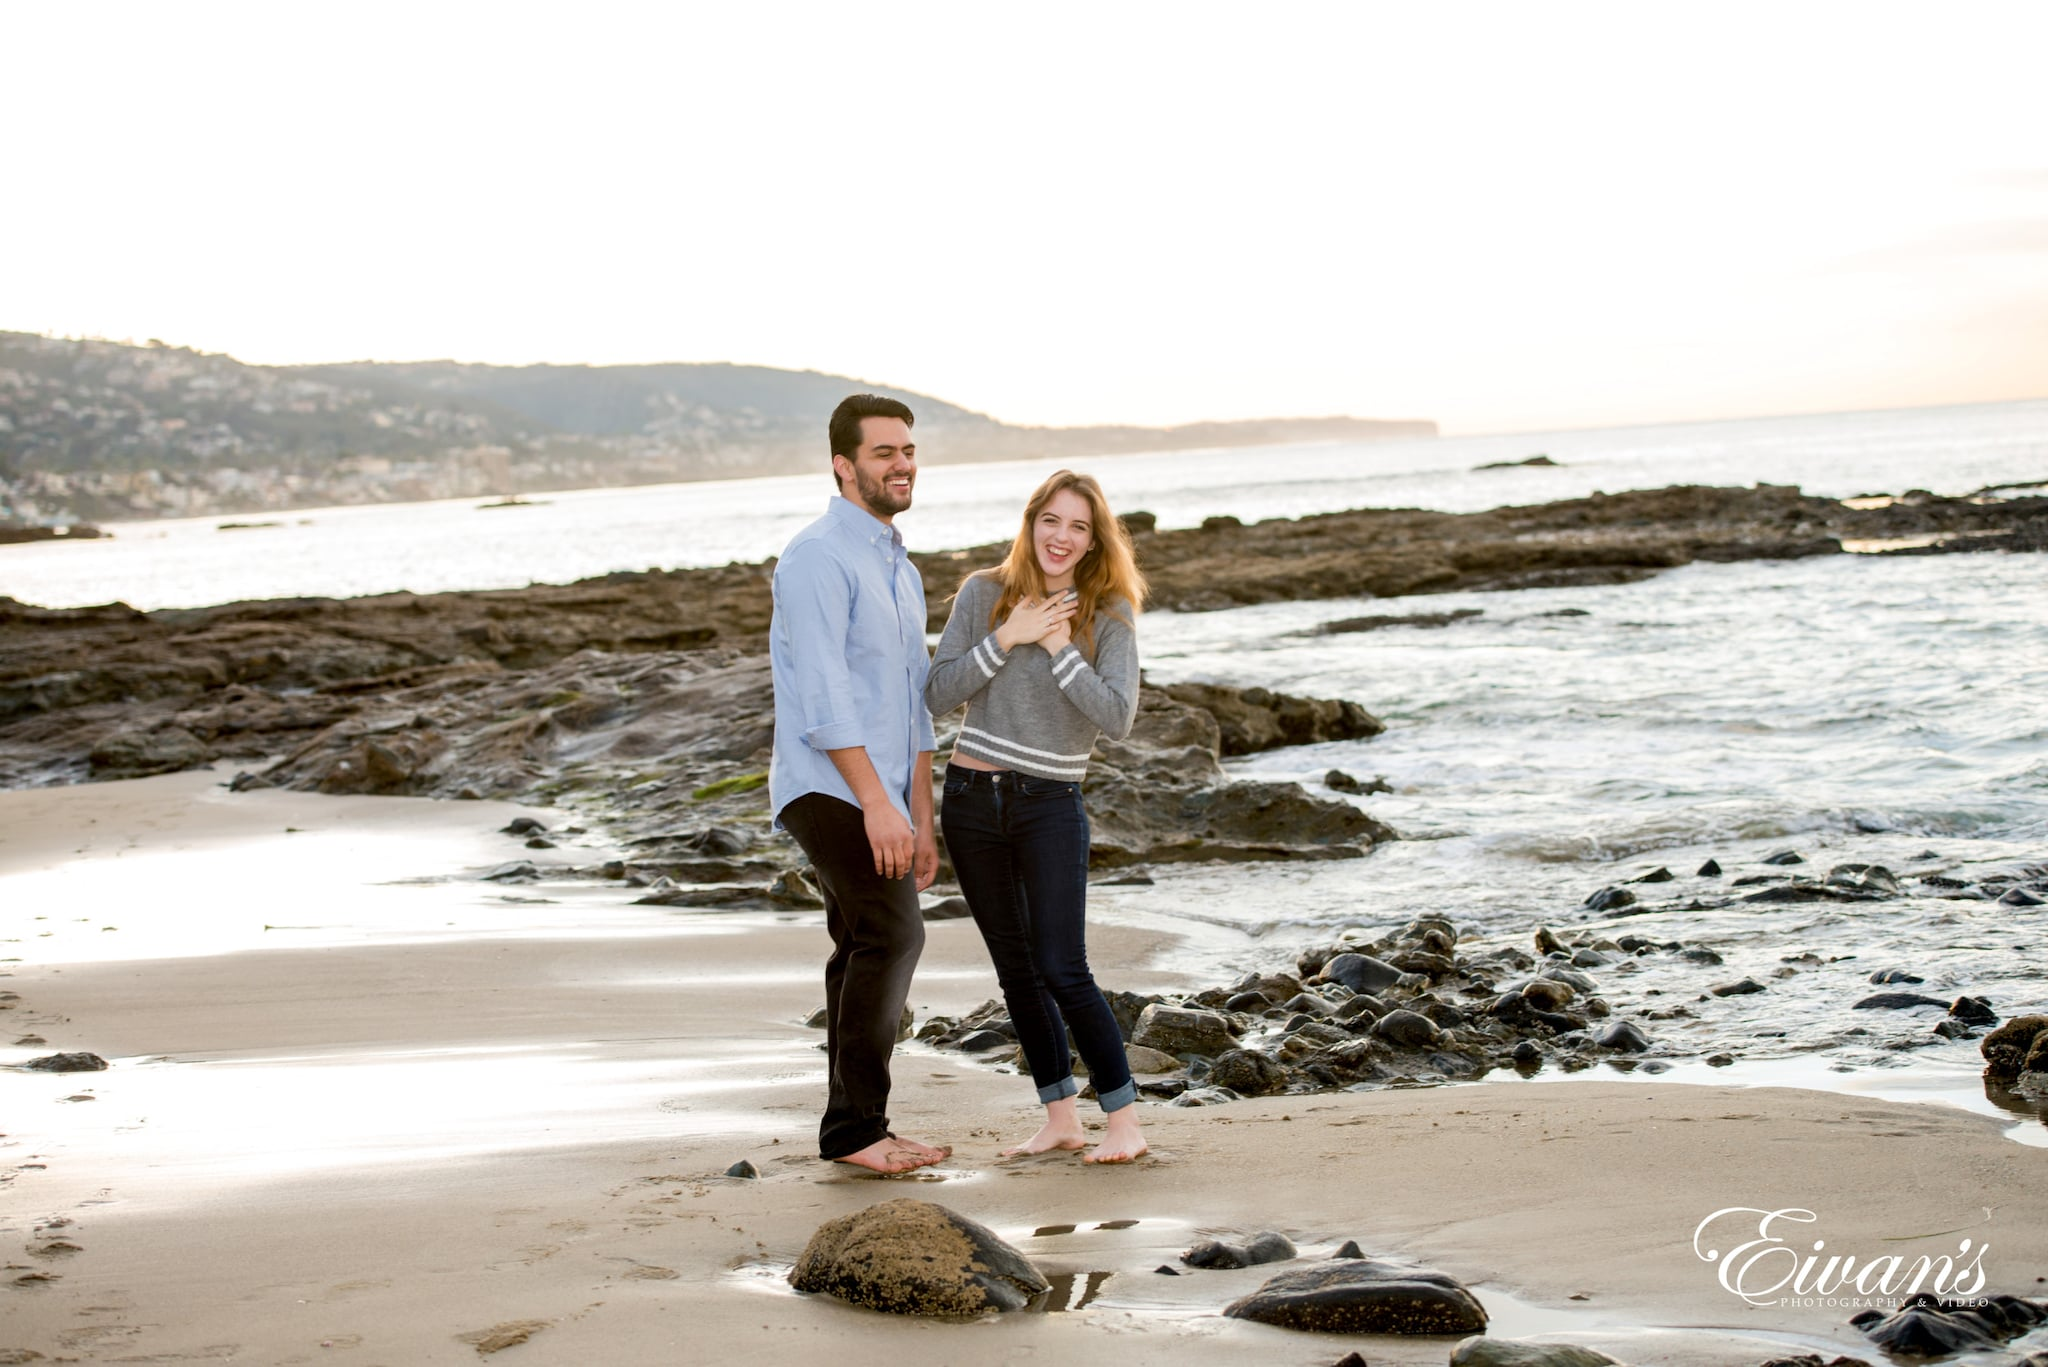 man and woman standing on beach shore during daytime